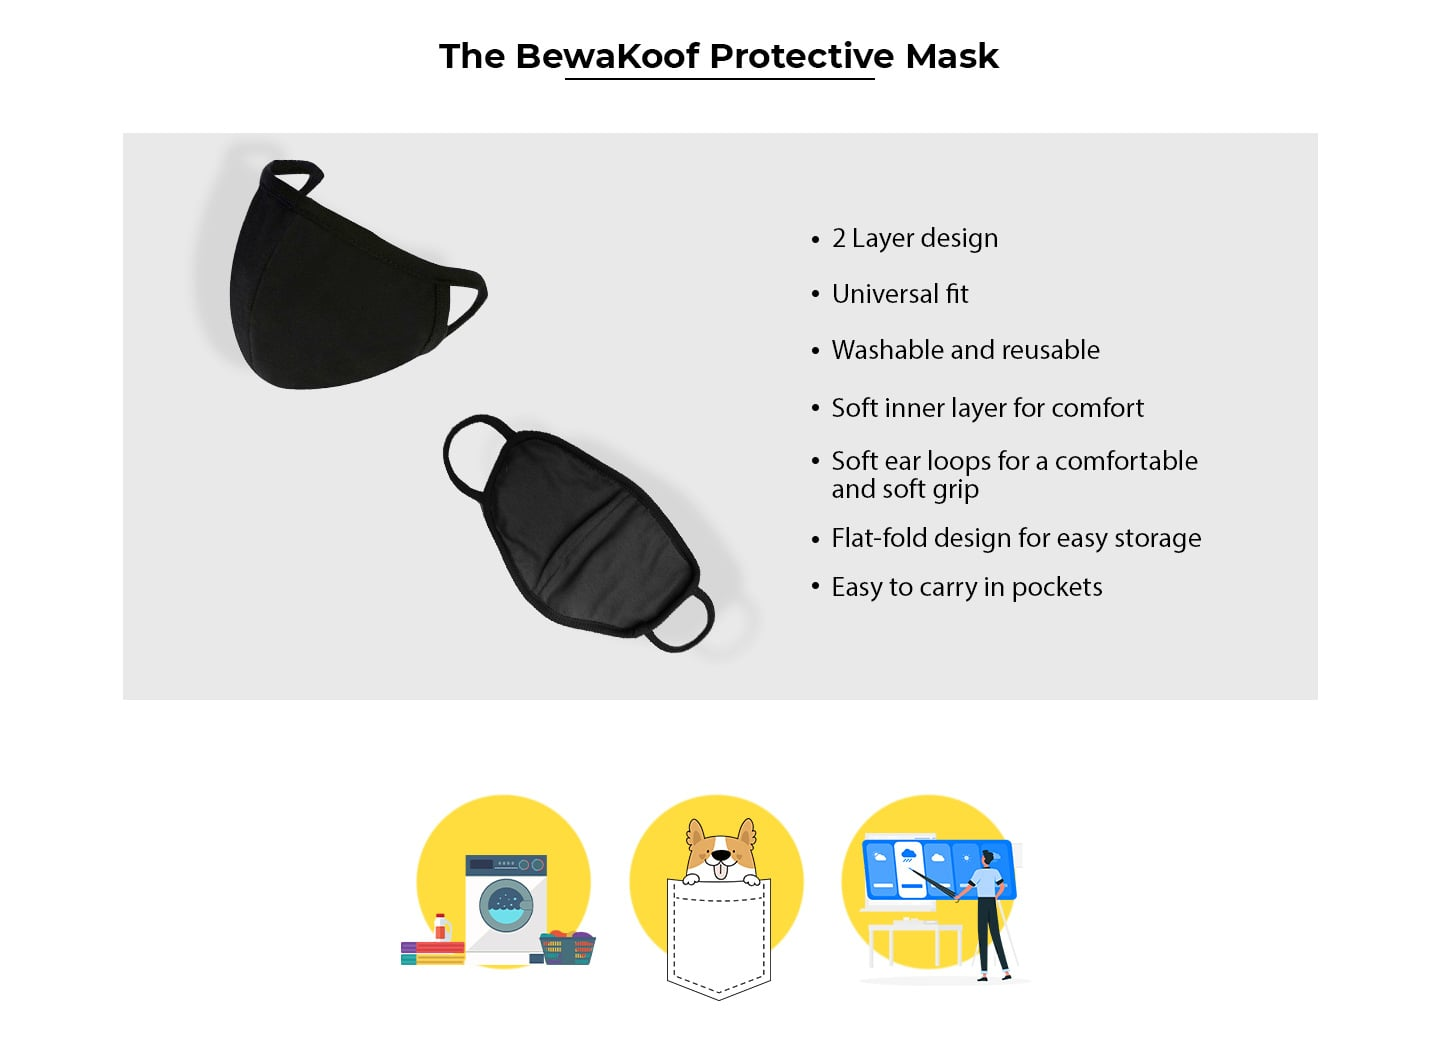 2-Layer Premium Protective Masks - Pack of 3 (Jet black-Dark olive-Jet black) Description Image Website 0@Bewakoof.com